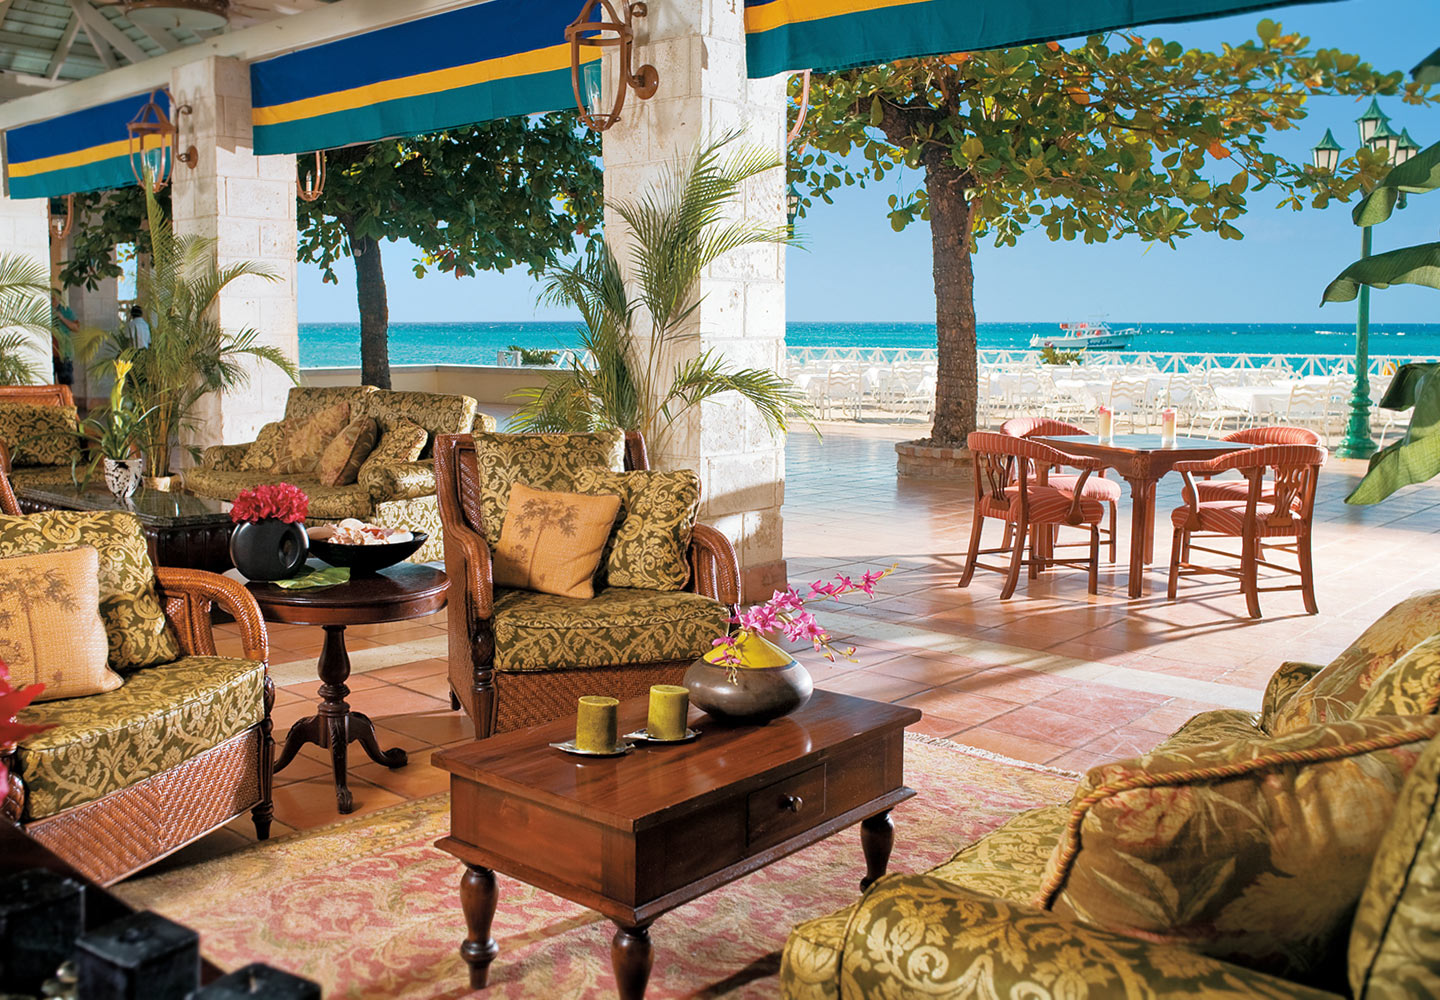 Travel Agency All-Inclusive Resort Sandals Montego Bay 026